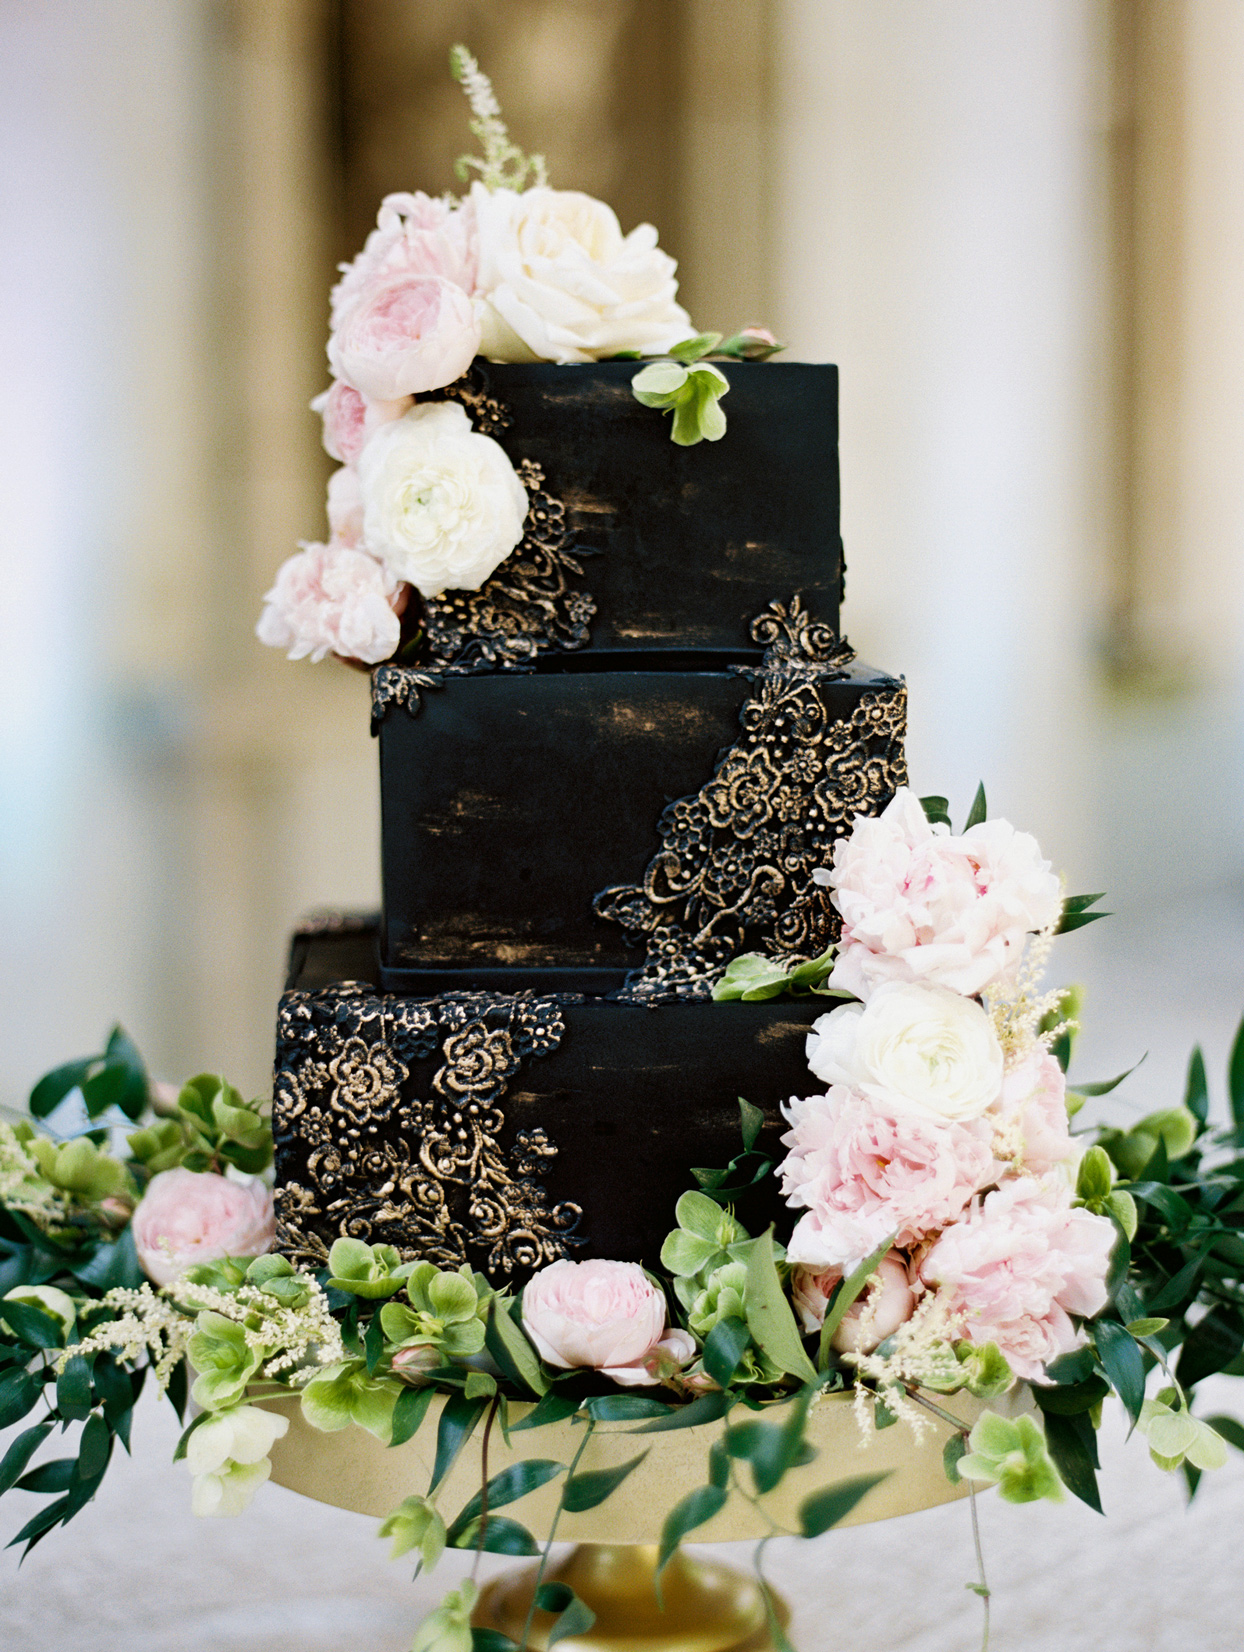 three-tiered square black wedding cake with gold-dusted lace pattern